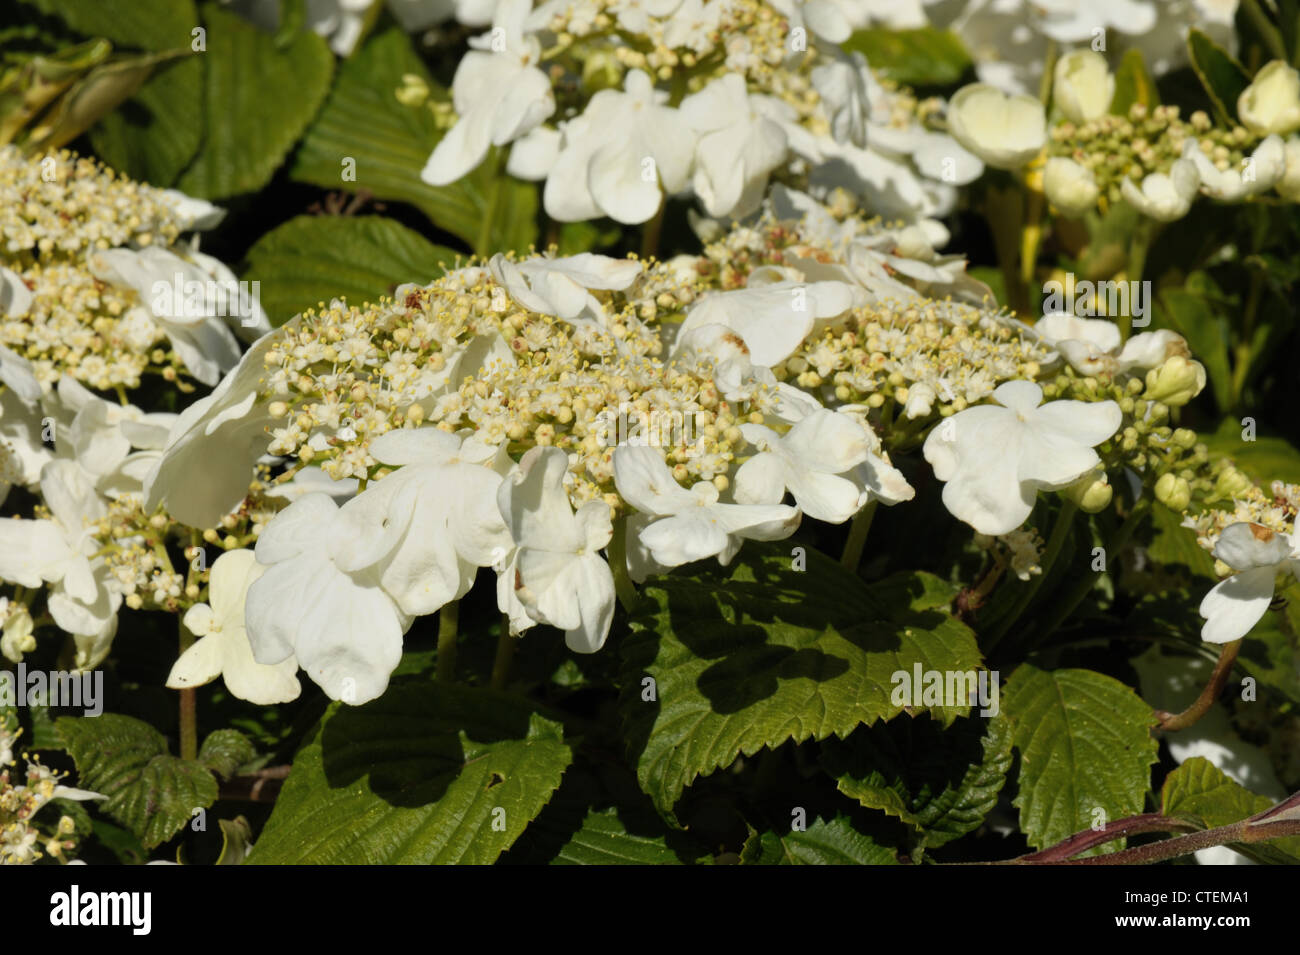 White snowball flowers stock photos white snowball flowers stock japanese snowball bush viburnum plicatum white flowers on ornamental shrub stock image mightylinksfo